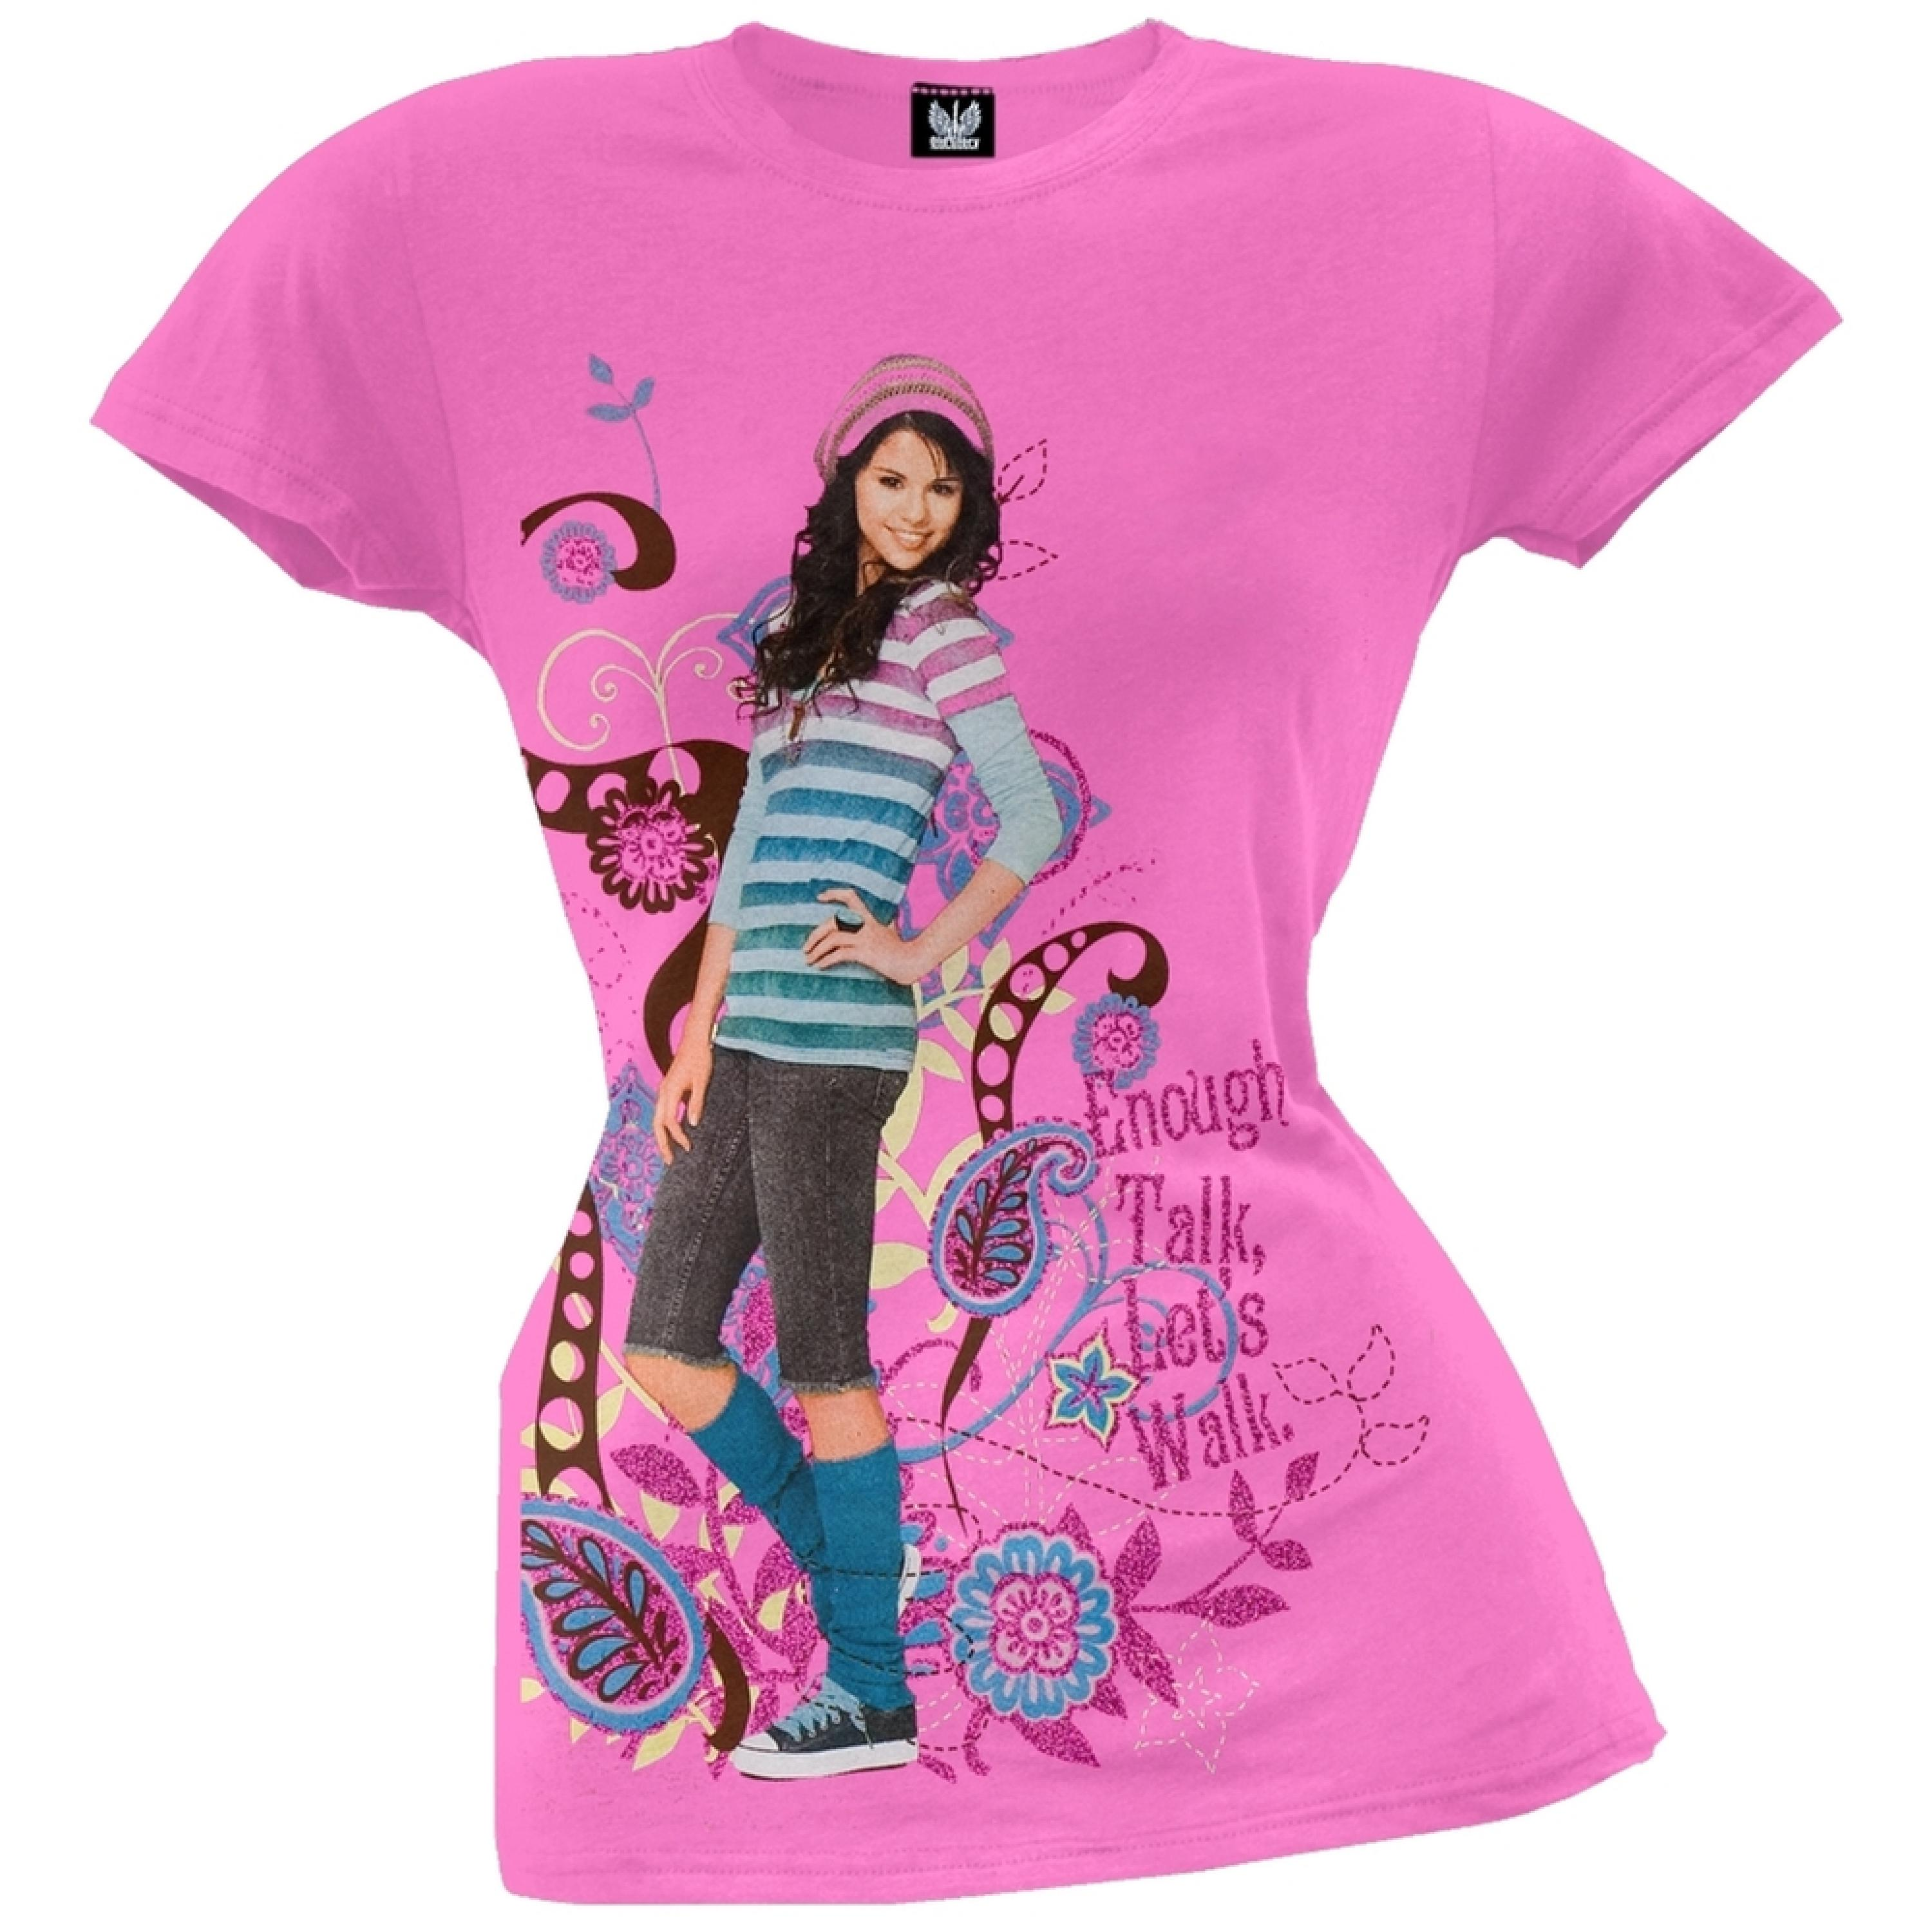 Wizards Of Waverly Place - Enough Talk Girls Youth T-Shirt